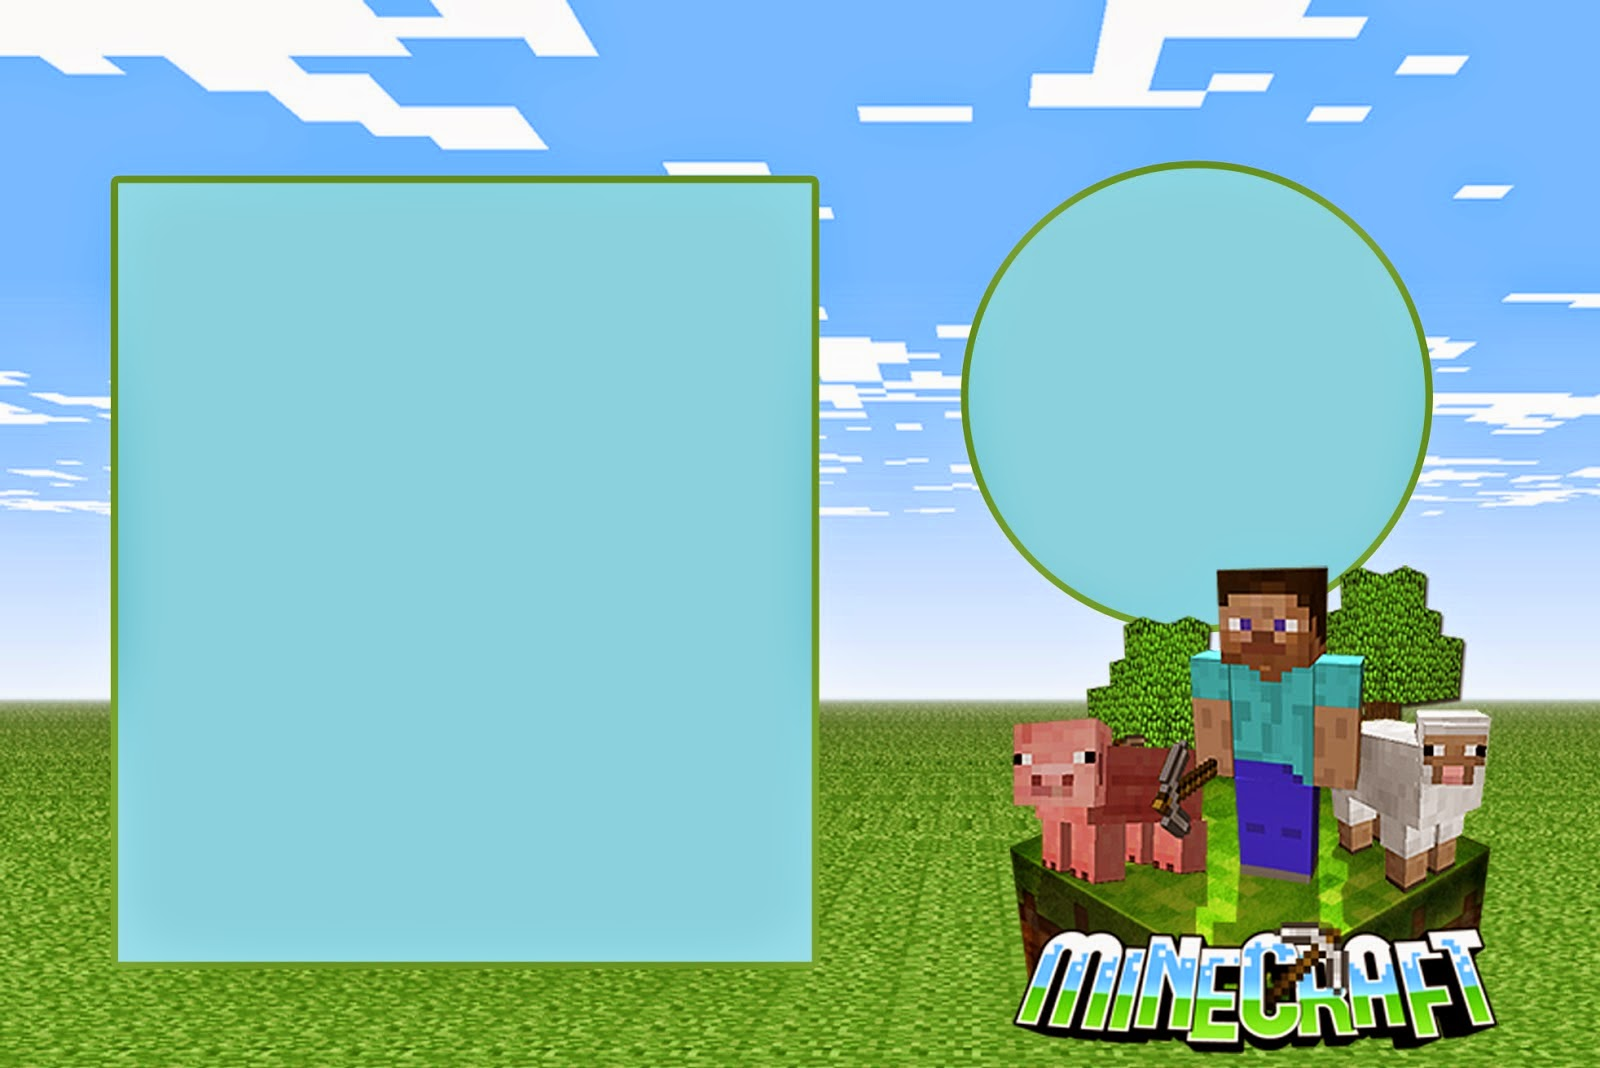 Minecraft Invitations Template – Mine Craft Invitation Template